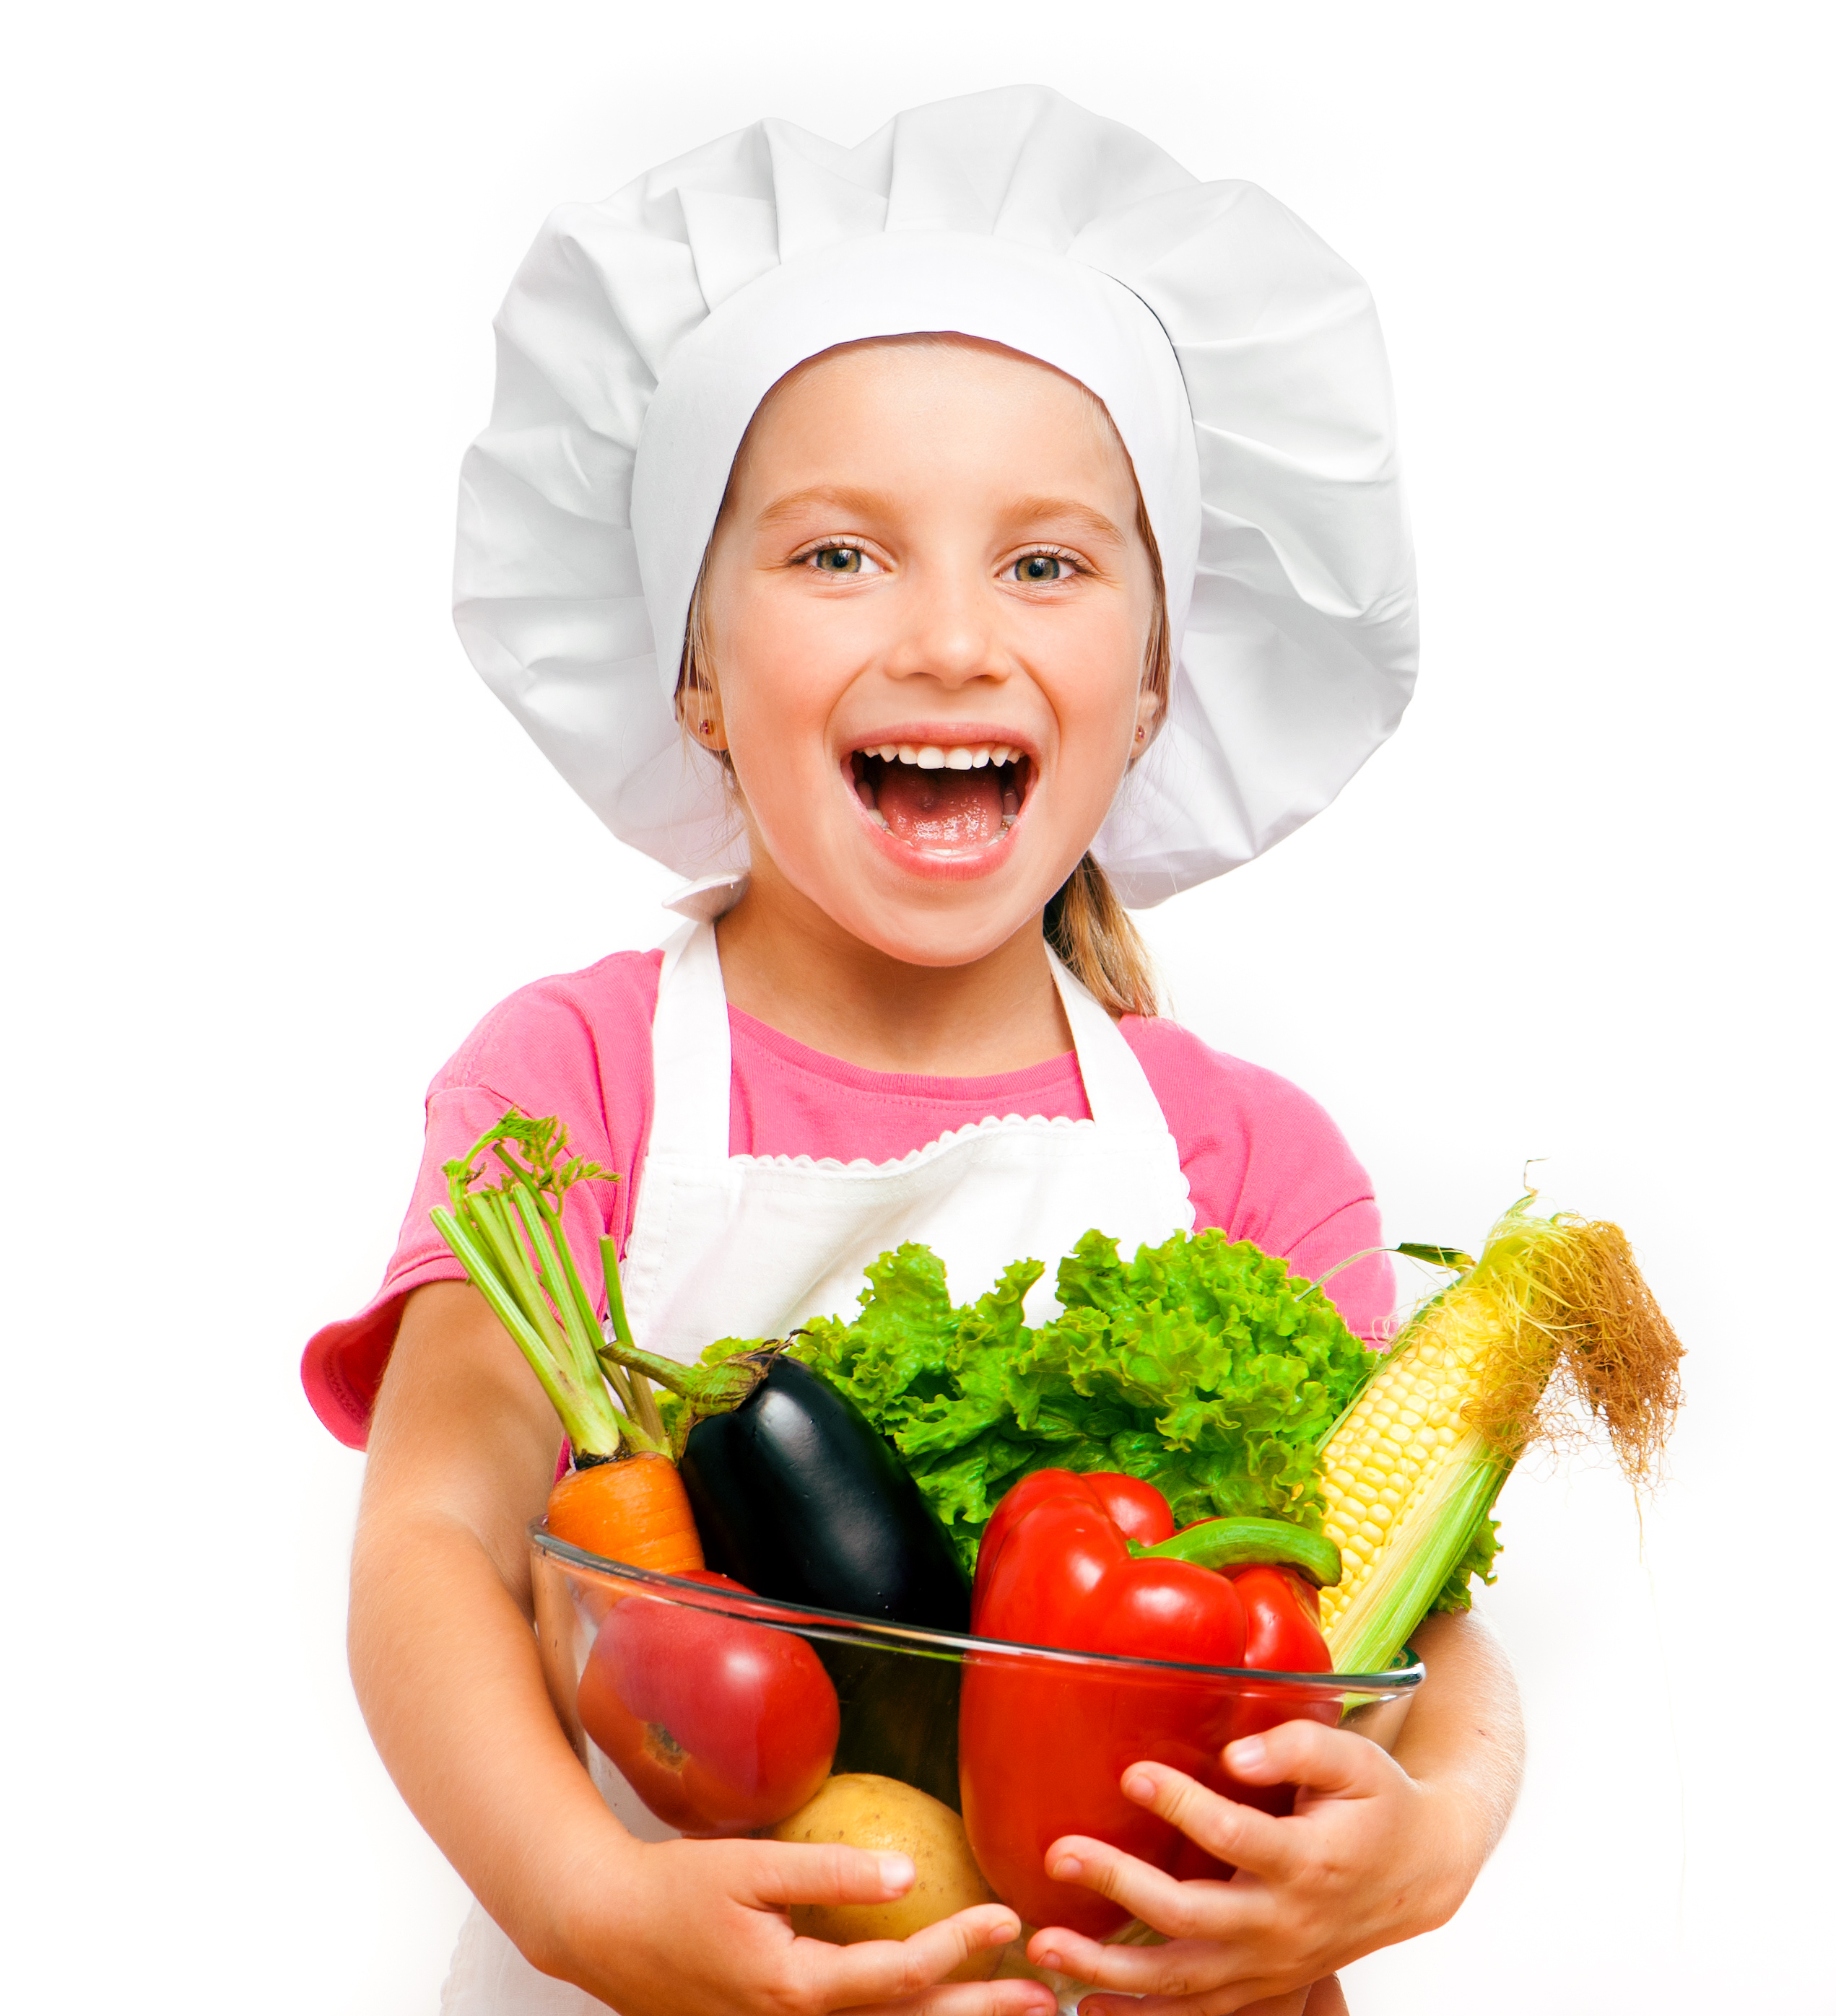 shutterstock happy kid with food